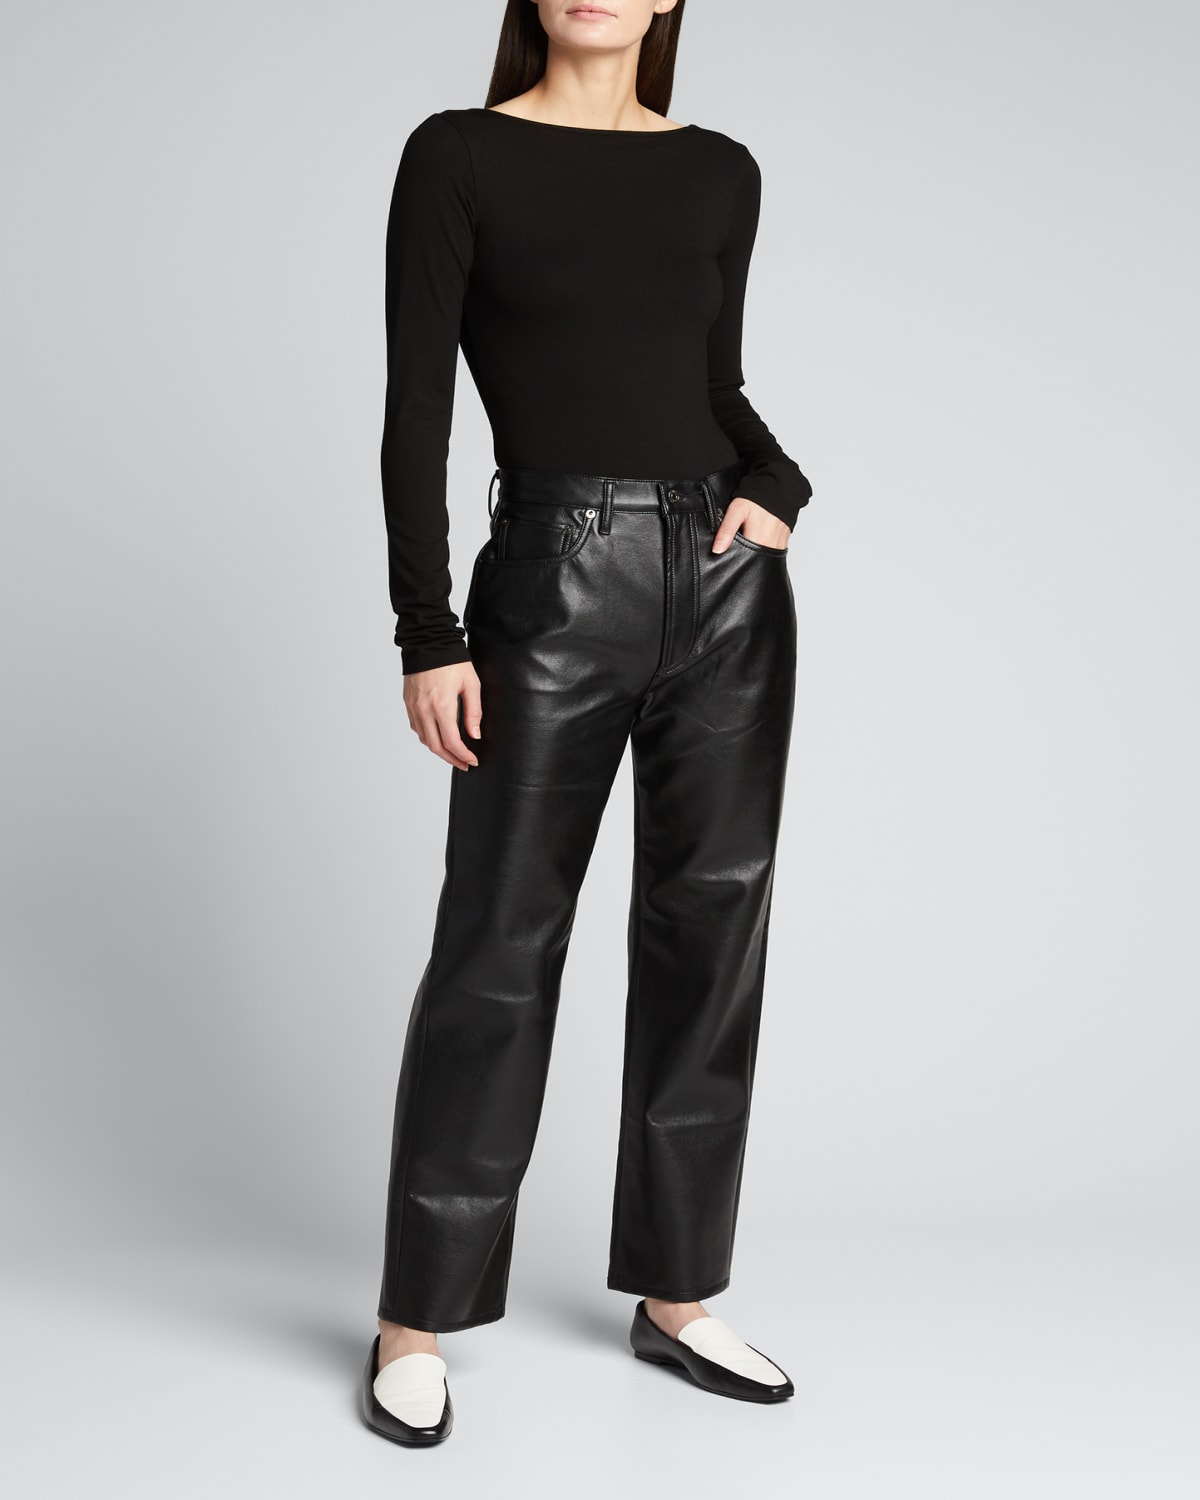 90s Recycled Leather Pinched-Waist Pants